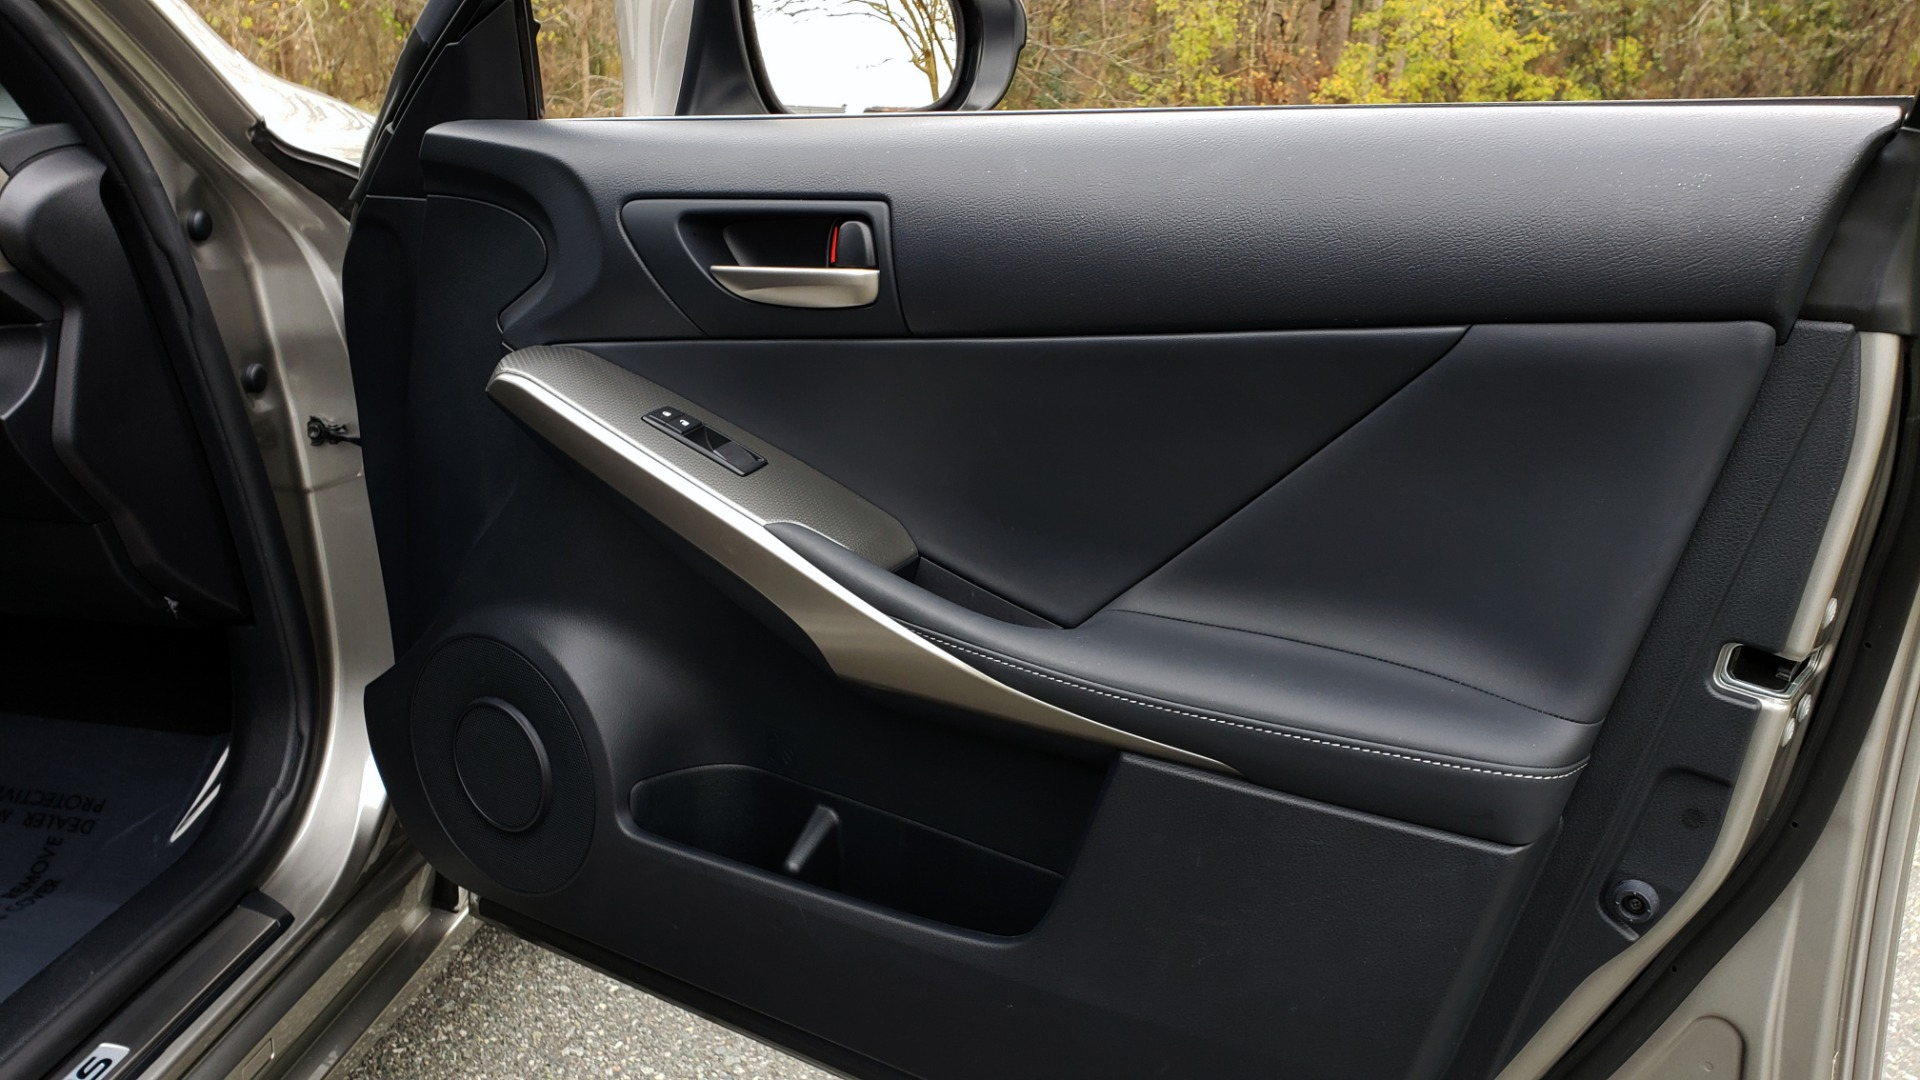 Used 2017 Lexus IS 200 TURBO F-SPORT / BSM / SUNROOF / VENT SEATS / REARVIEW for sale Sold at Formula Imports in Charlotte NC 28227 66